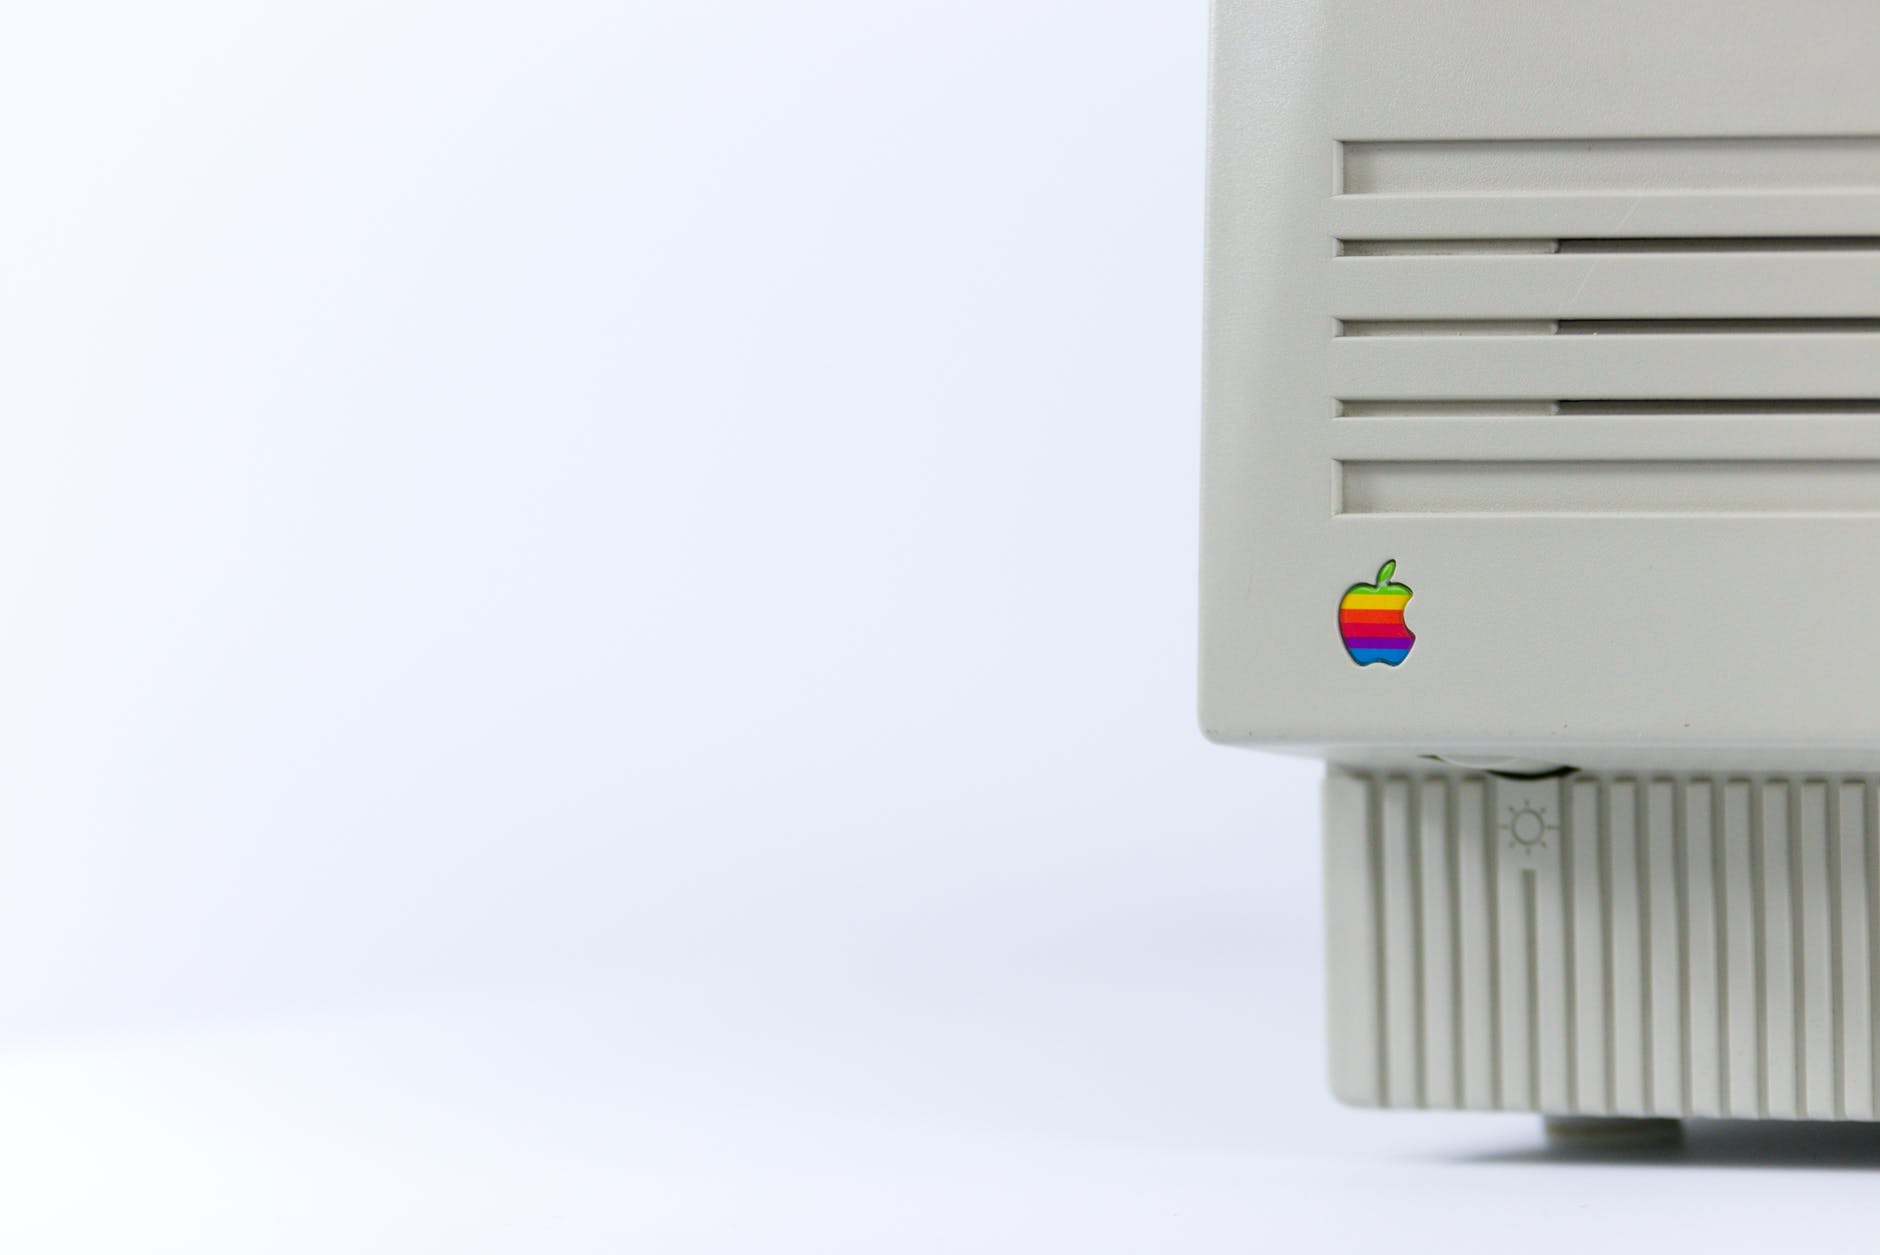 gray device with apple logo on white surface